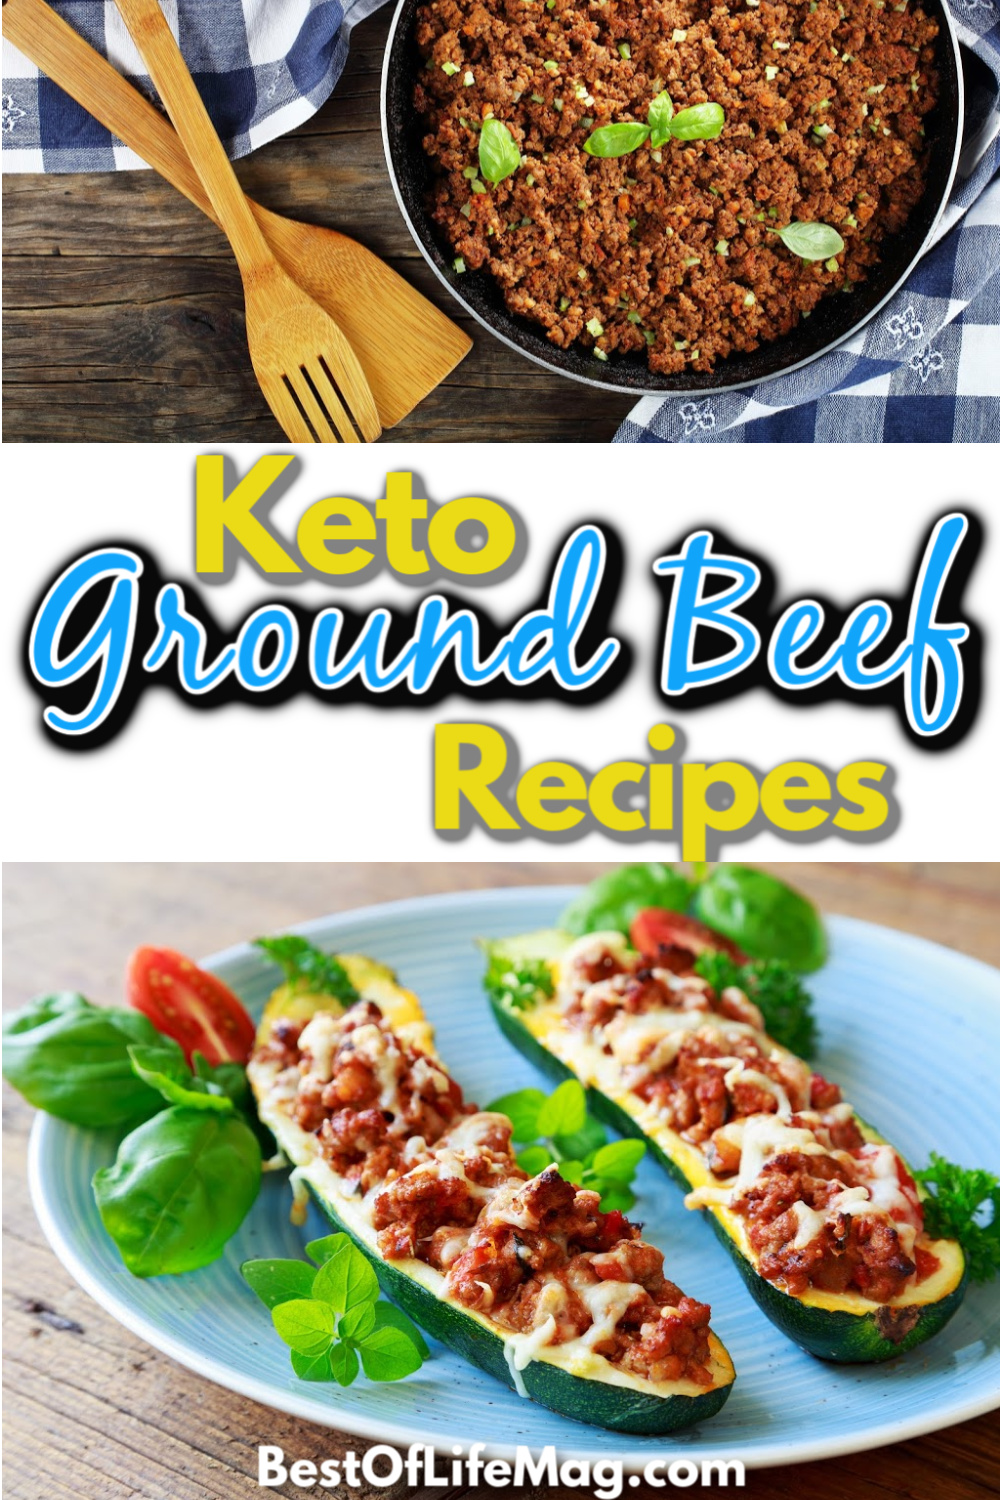 Ground beef is a popular meat used most commonly in homes all across the US so you'll need some easy keto recipes with ground beef to stay on a keto diet. Keto Ground Beef Ideas | Low Carb Ground Beef Ideas | Healthy Keto Recipes | Easy Keto Recipes | Low Carb Recipes with Ground Beef #keto #lowcarb via @amybarseghian